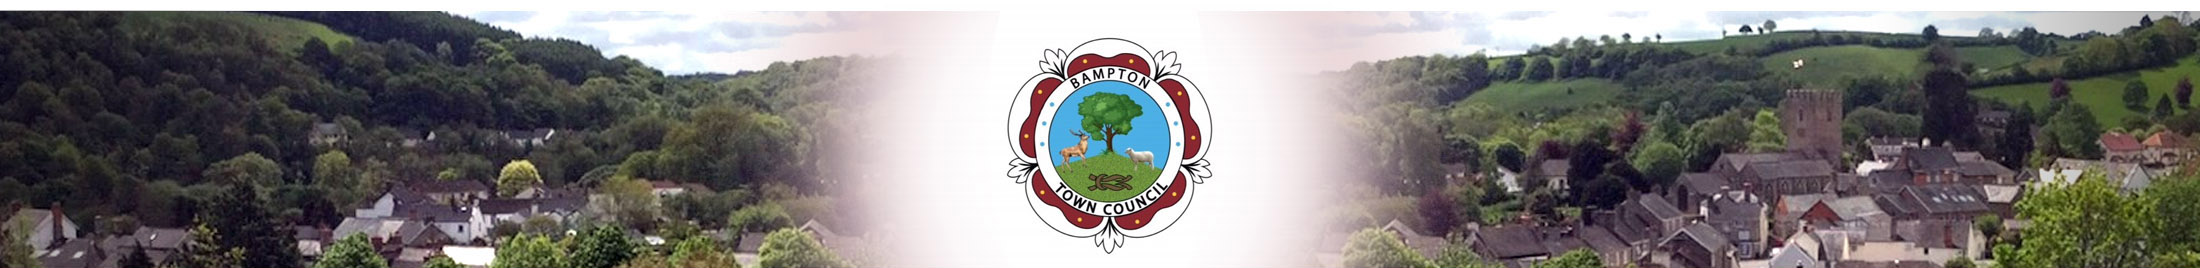 Header Image for Bampton Town Council